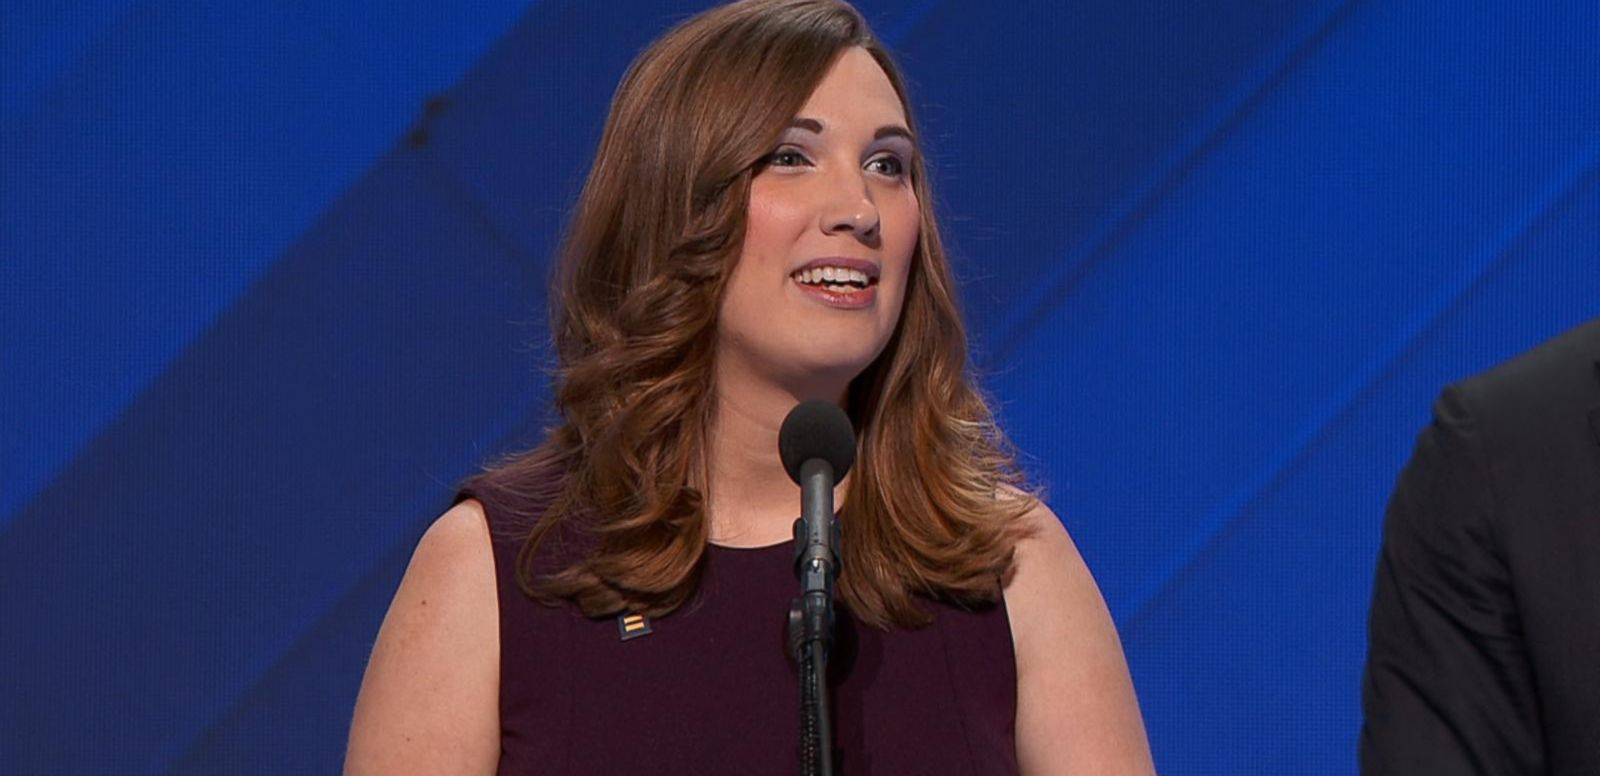 VIDEO: First Transgender Person to Speak at a Convention